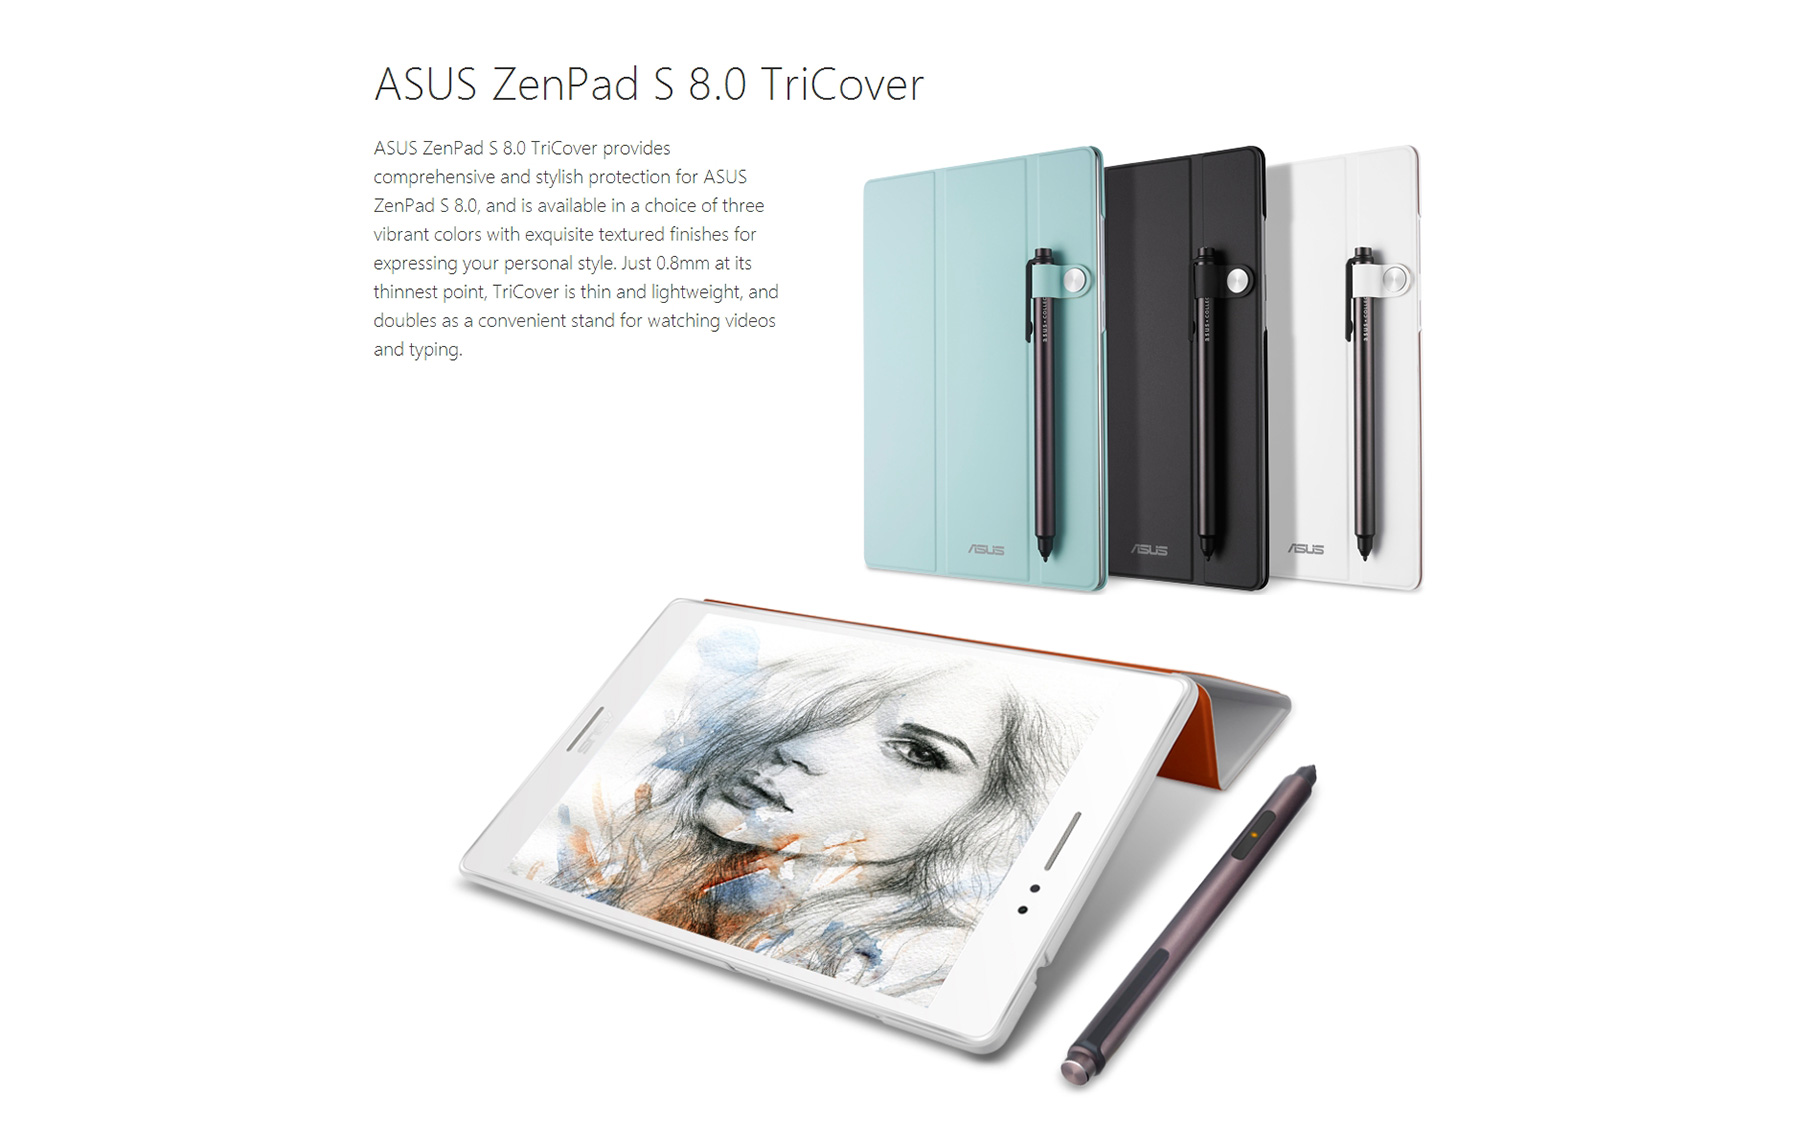 Asus Zenpad S 80 Z580ca Tablet Pc 35112 Free Shipping Usb Cable Wiring Diagram Product Notes 1 Download Your Favorite Apps Through The Google Play Store Or Market Installed 2 Note This Android Windows Is Designed Only To